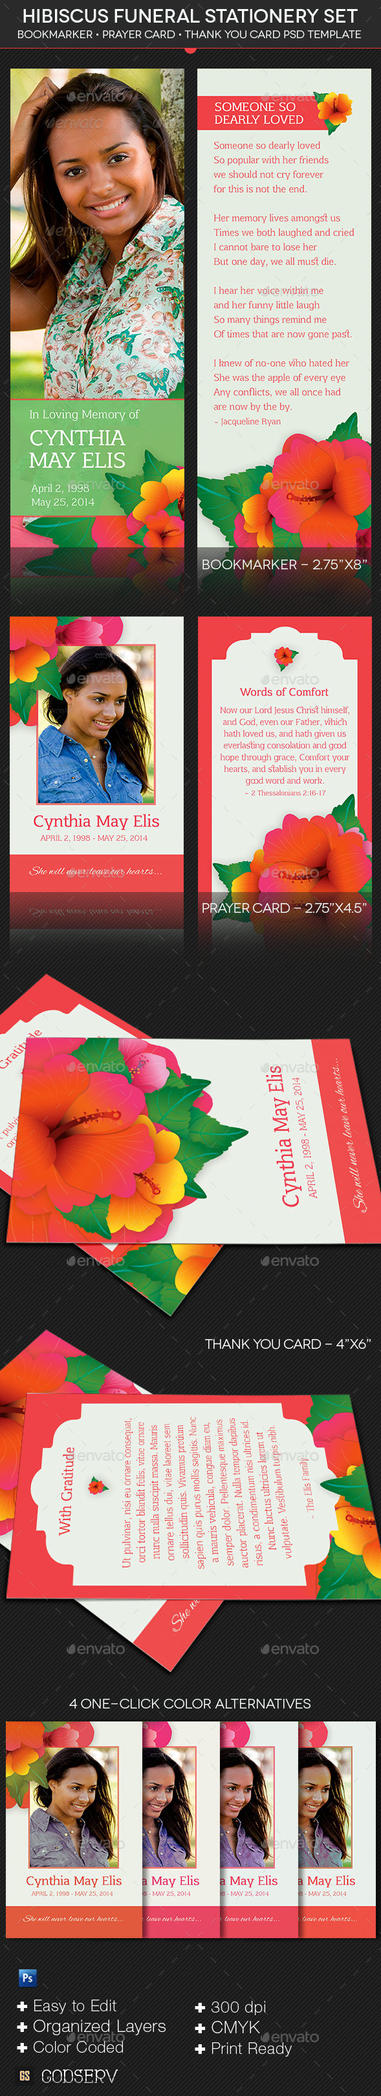 Hibiscus Funeral Stationery Template Set by Godserv